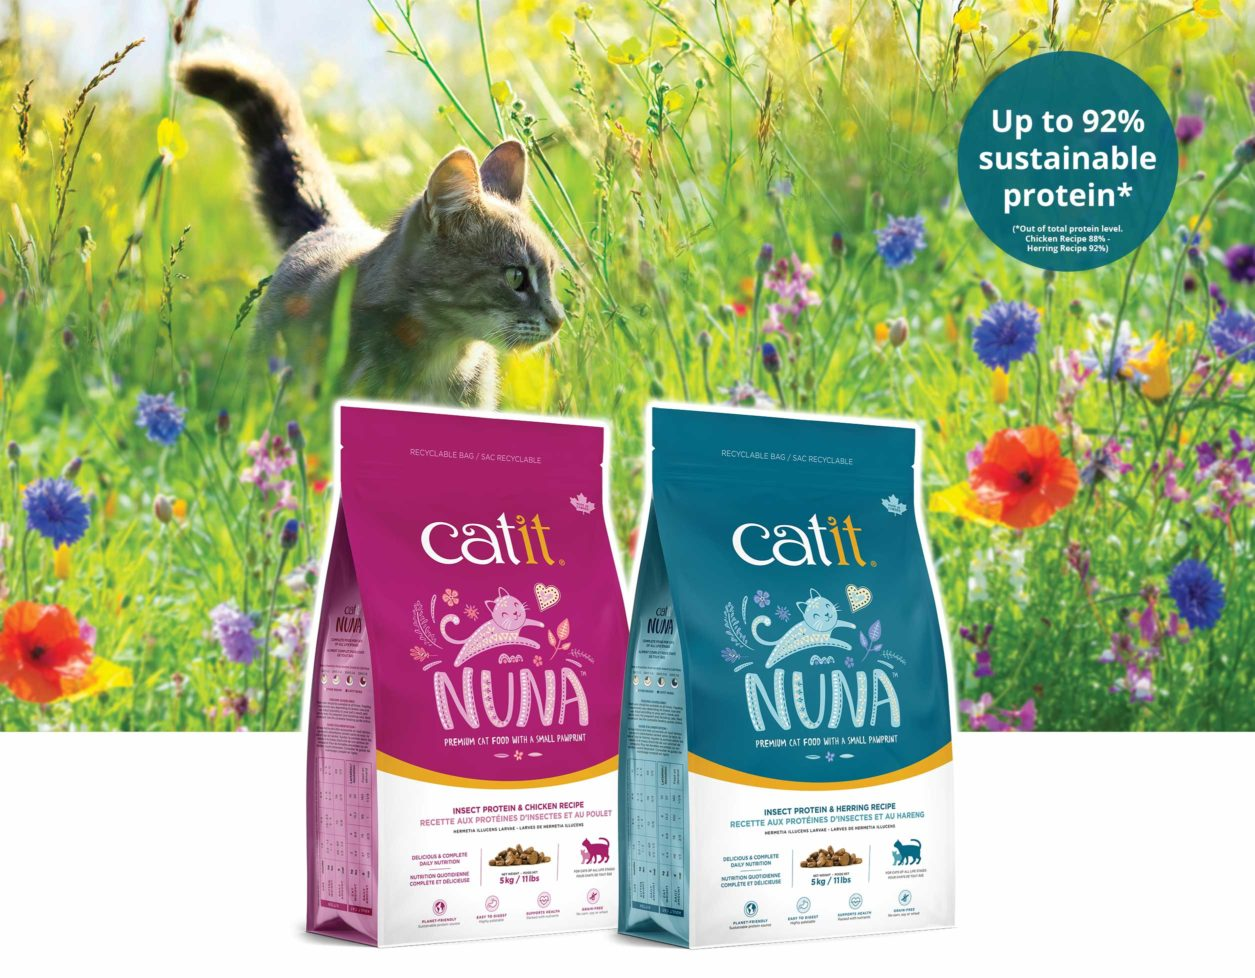 Nuna insect-based cat food - Cat in grass field - Up to 92% sustainable protein